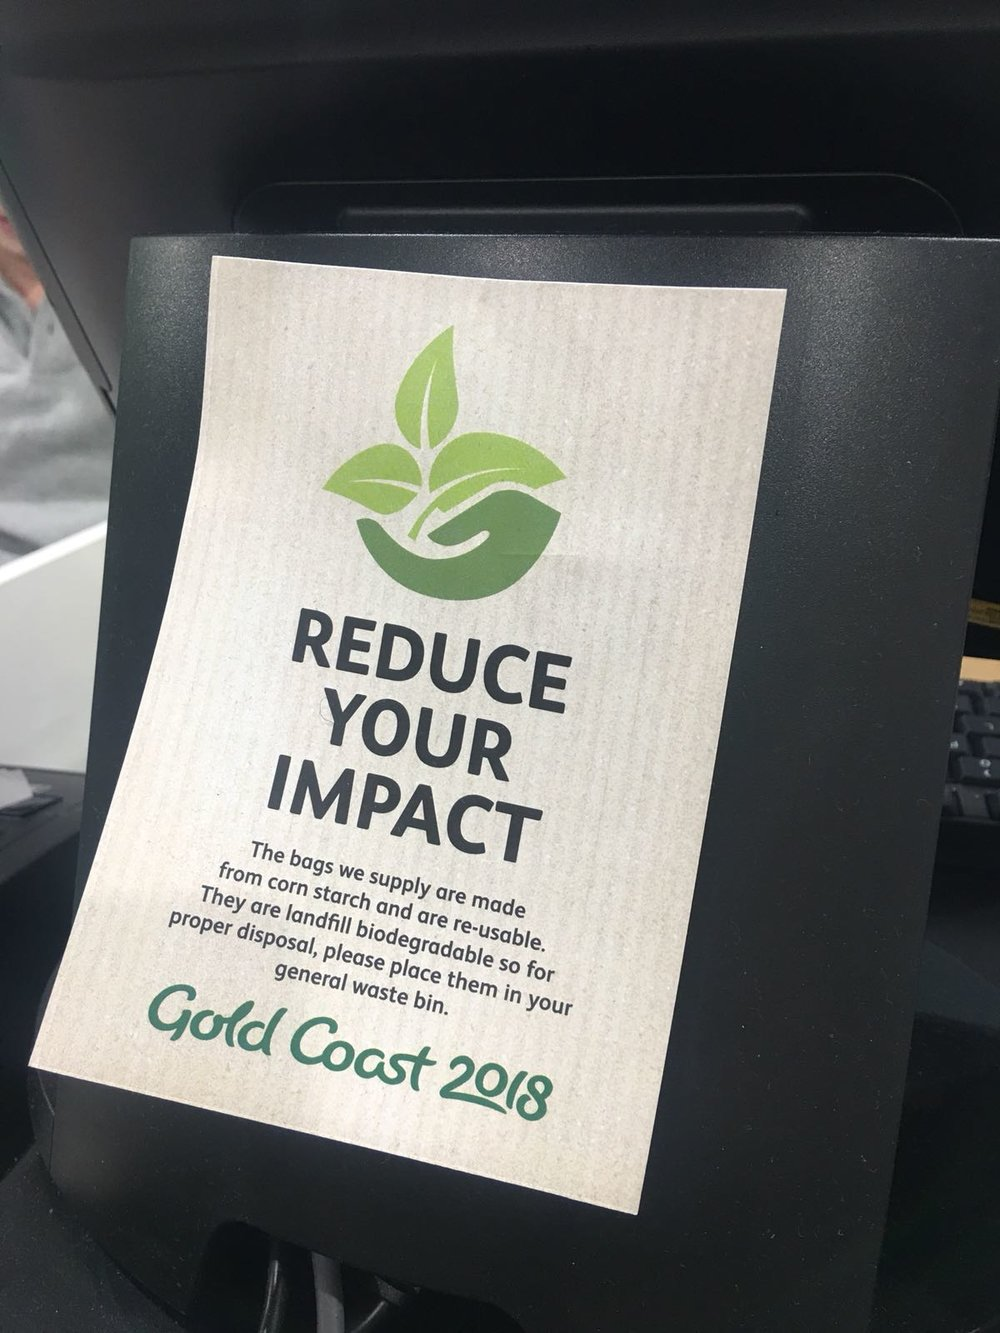 Biodegradable, re-usable bags on offer to attendees at the Gold Coast Commonwealth Games 2018.